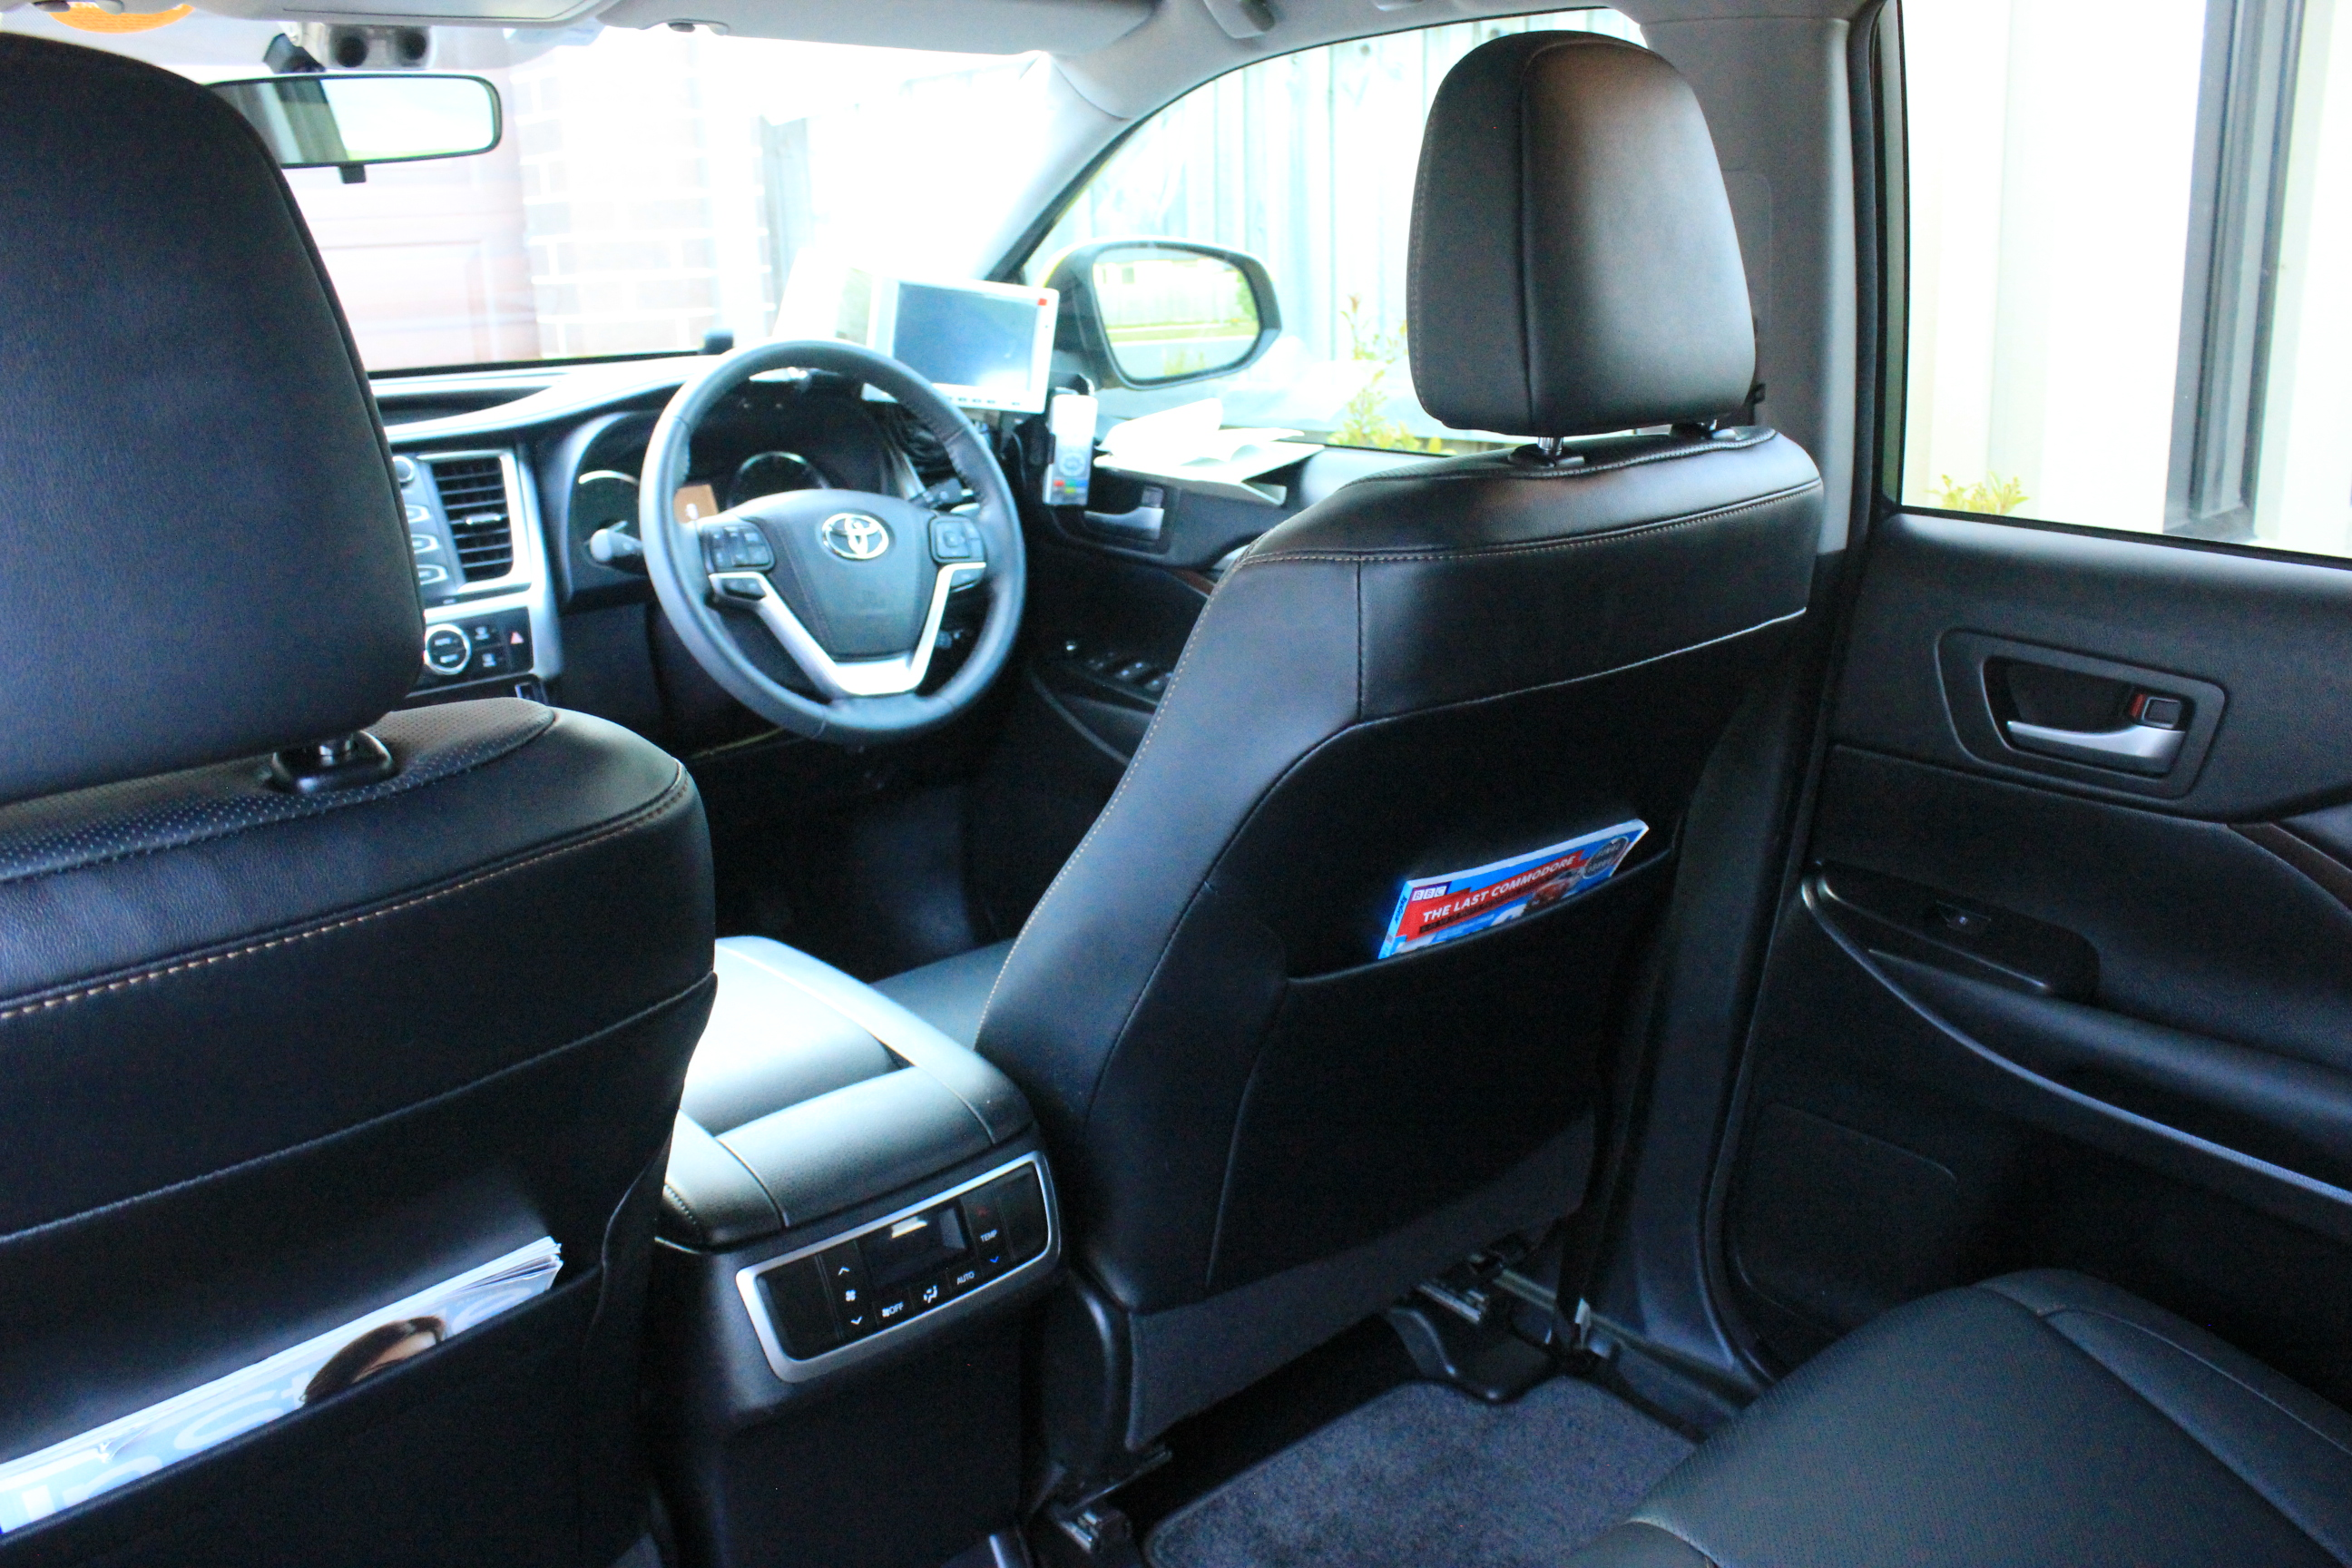 Melbourne Eastern Taxis - Clean, Premium Cars - Car Interior (Toyota Kluger GXL)